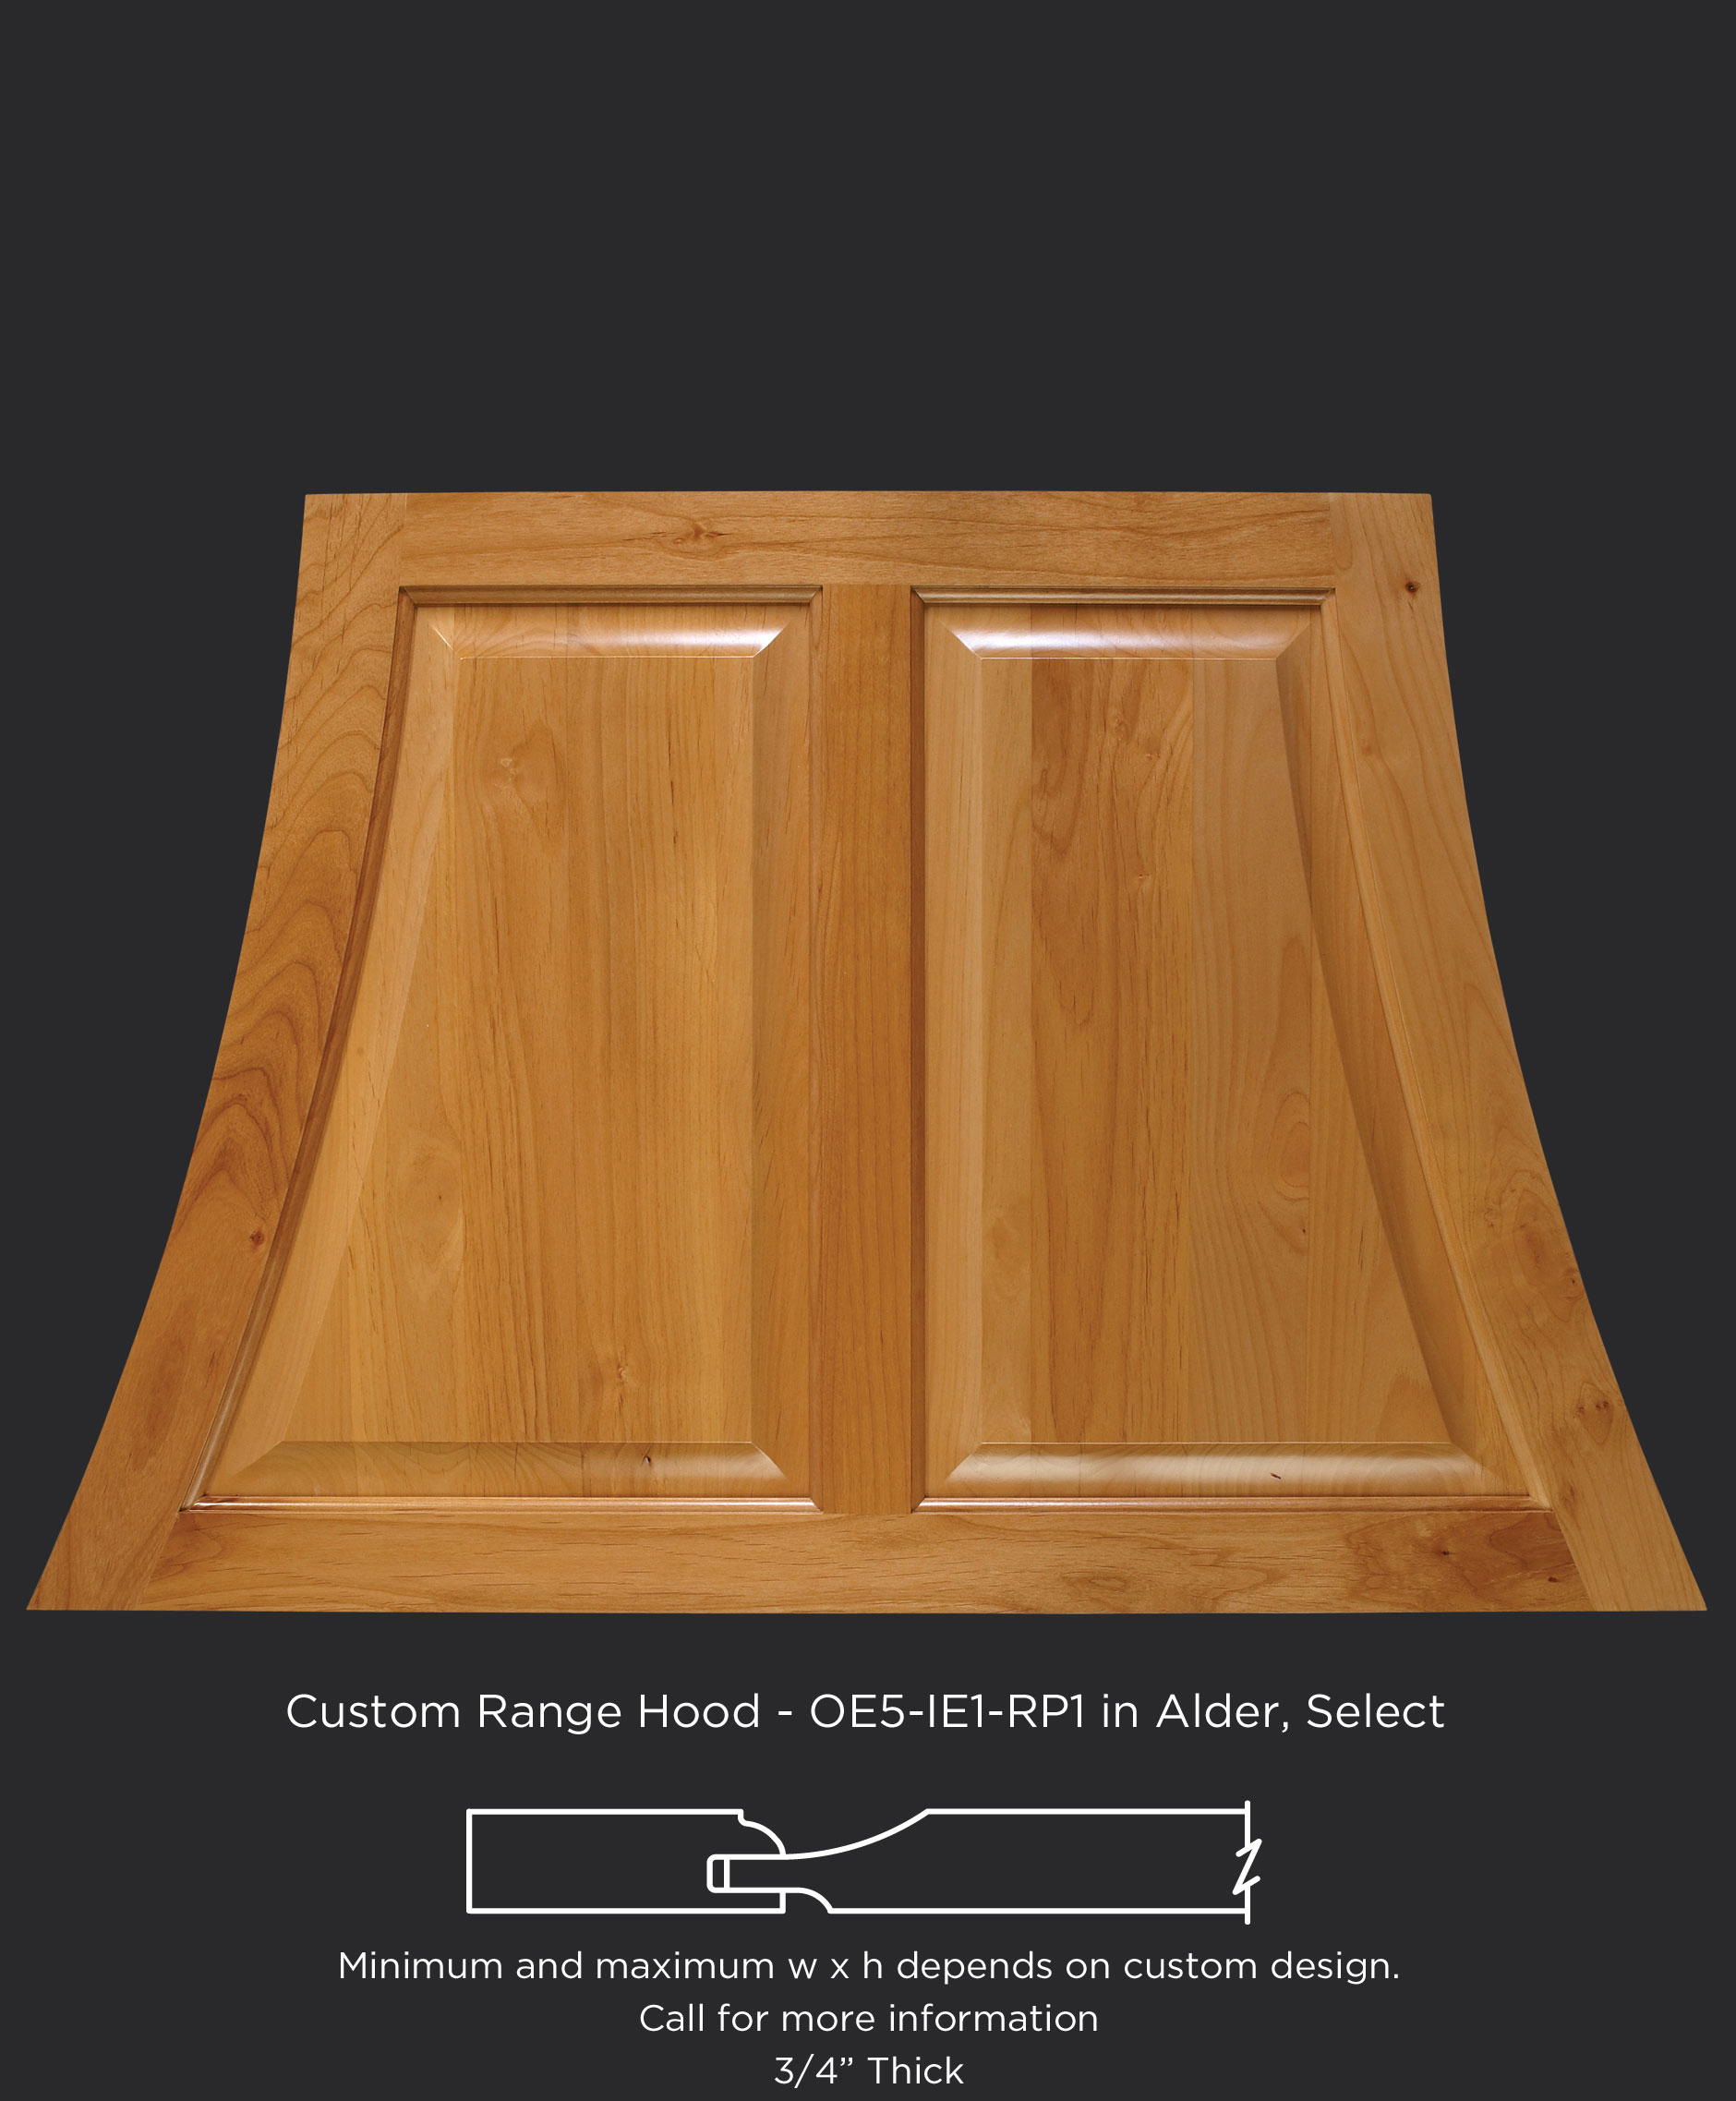 Wood range hood with center stile and OE5-IE1-RP1 in Alder, Select